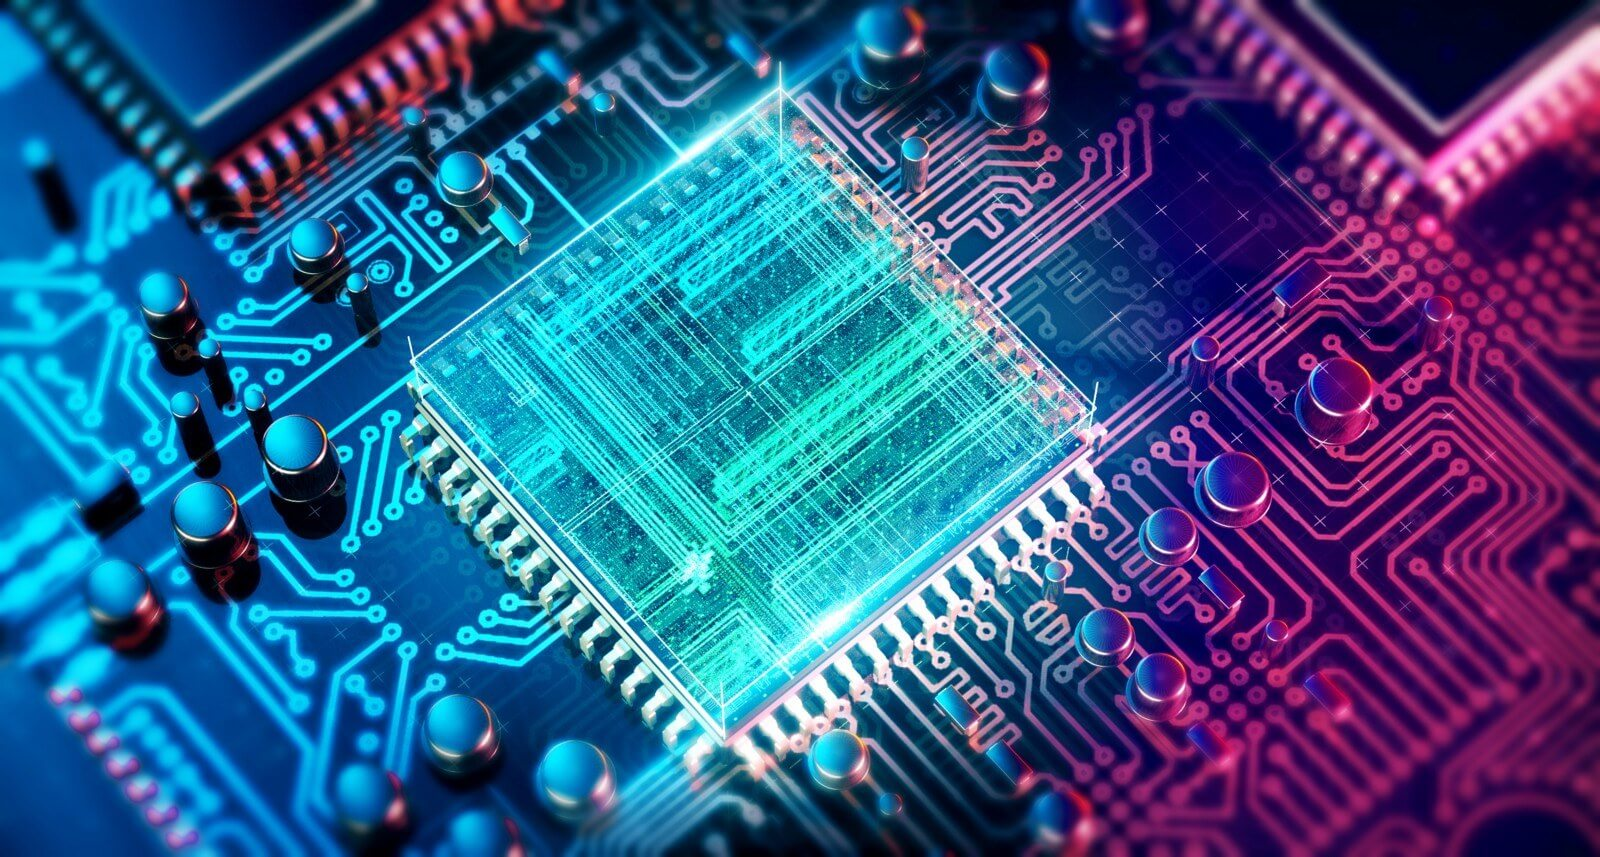 TSMC partners with Taiwan's Ministry of Science and Technology to create a quantum computer